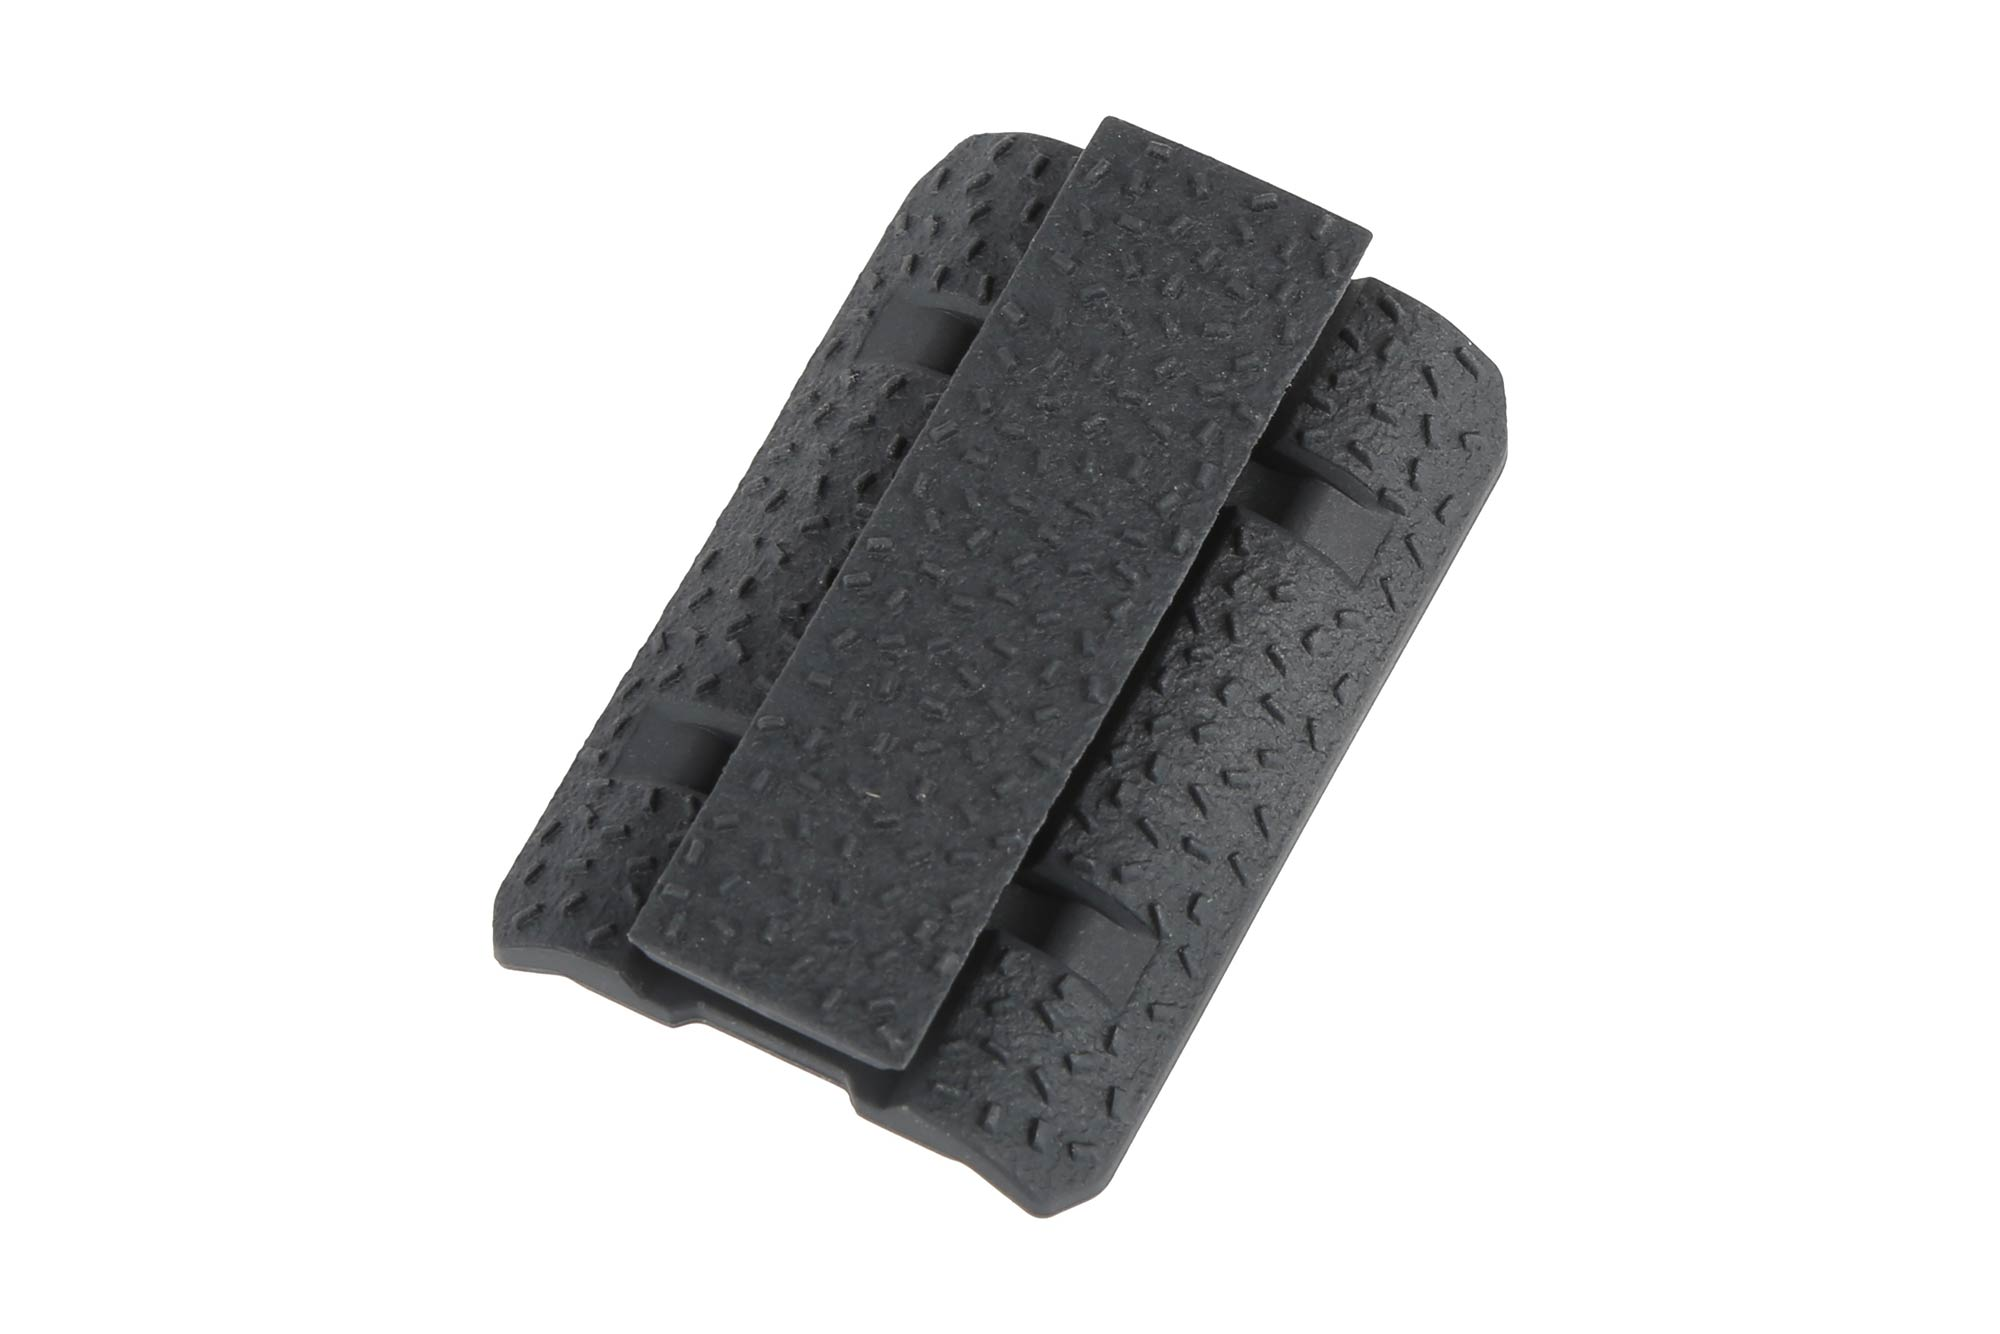 The Magpul Industries polymer M-LOK rail cover features an aggressive no slip grip